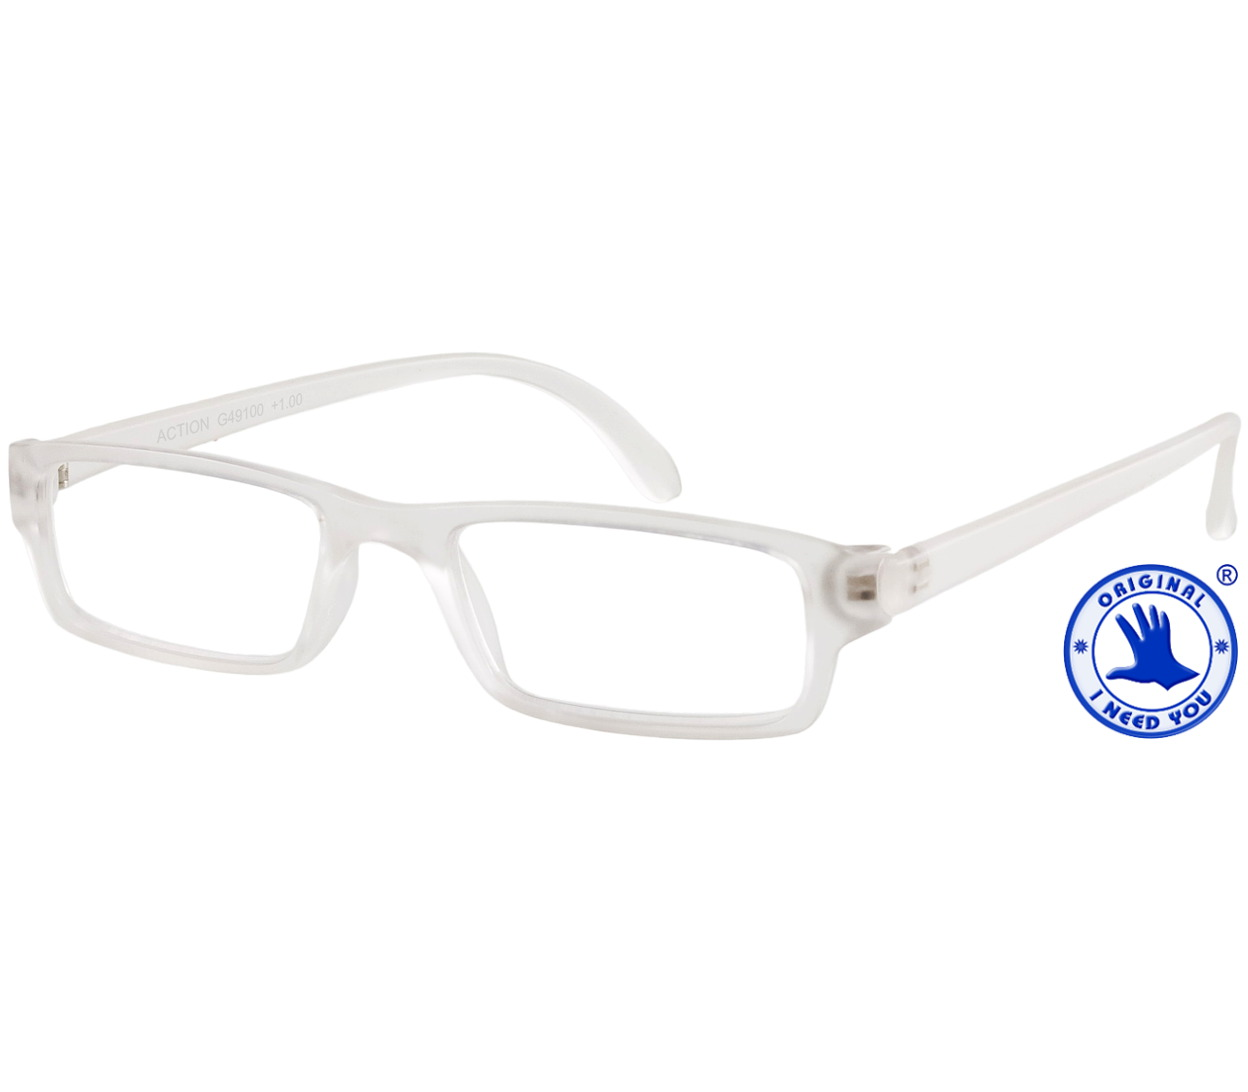 Main Image (Angle) - Action (Clear) Classic Reading Glasses